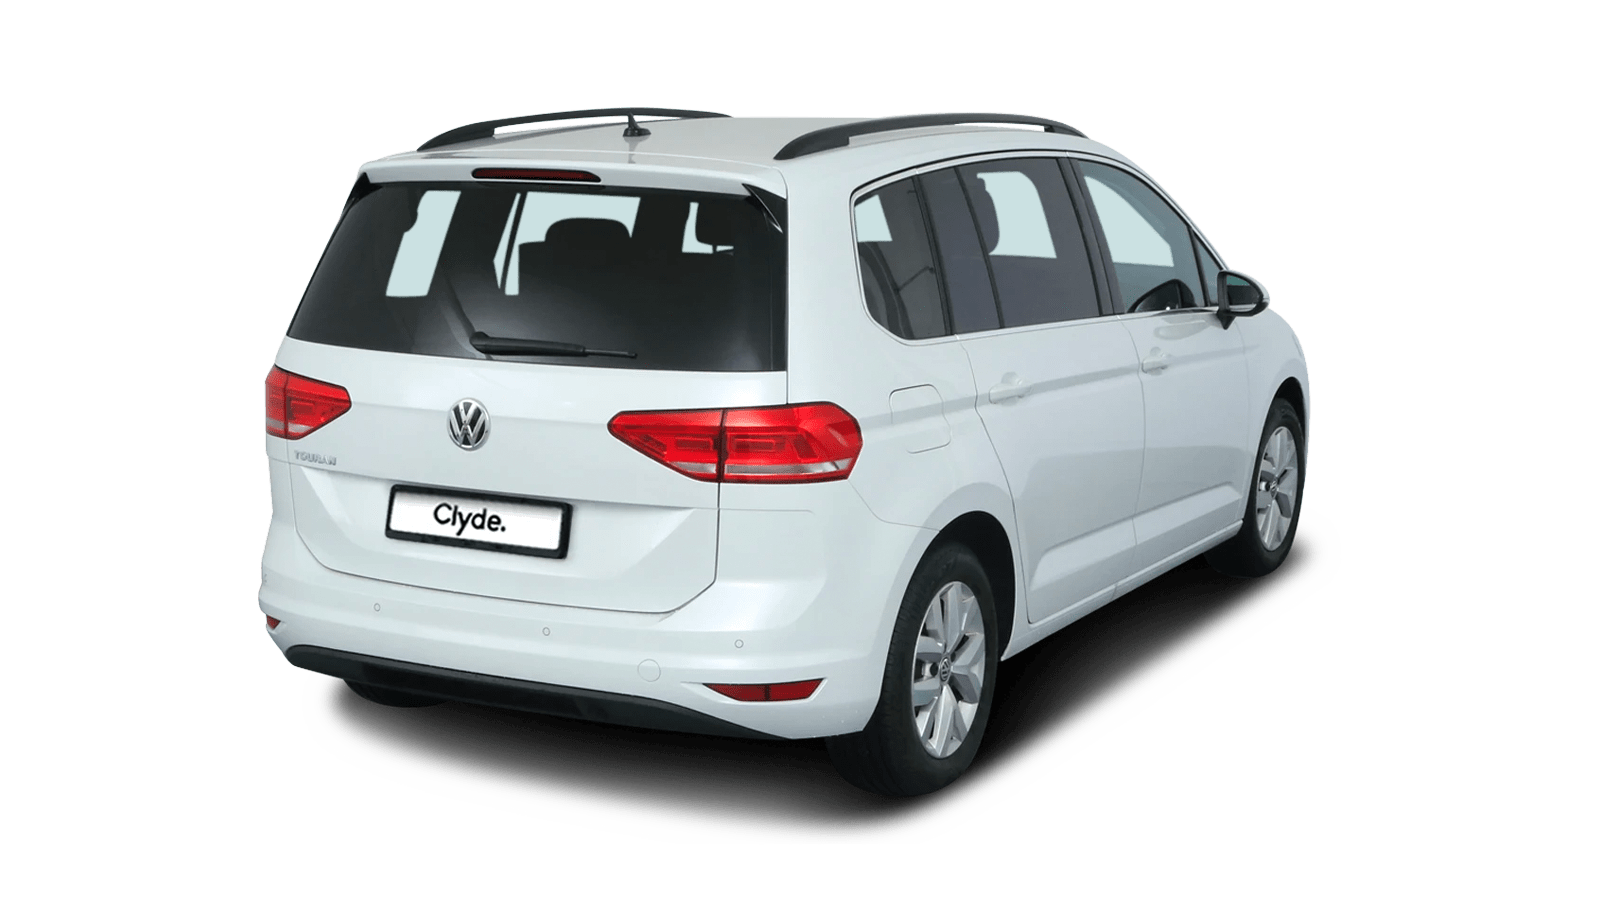 VW Touran Weiss front - Clyde Auto-Abo